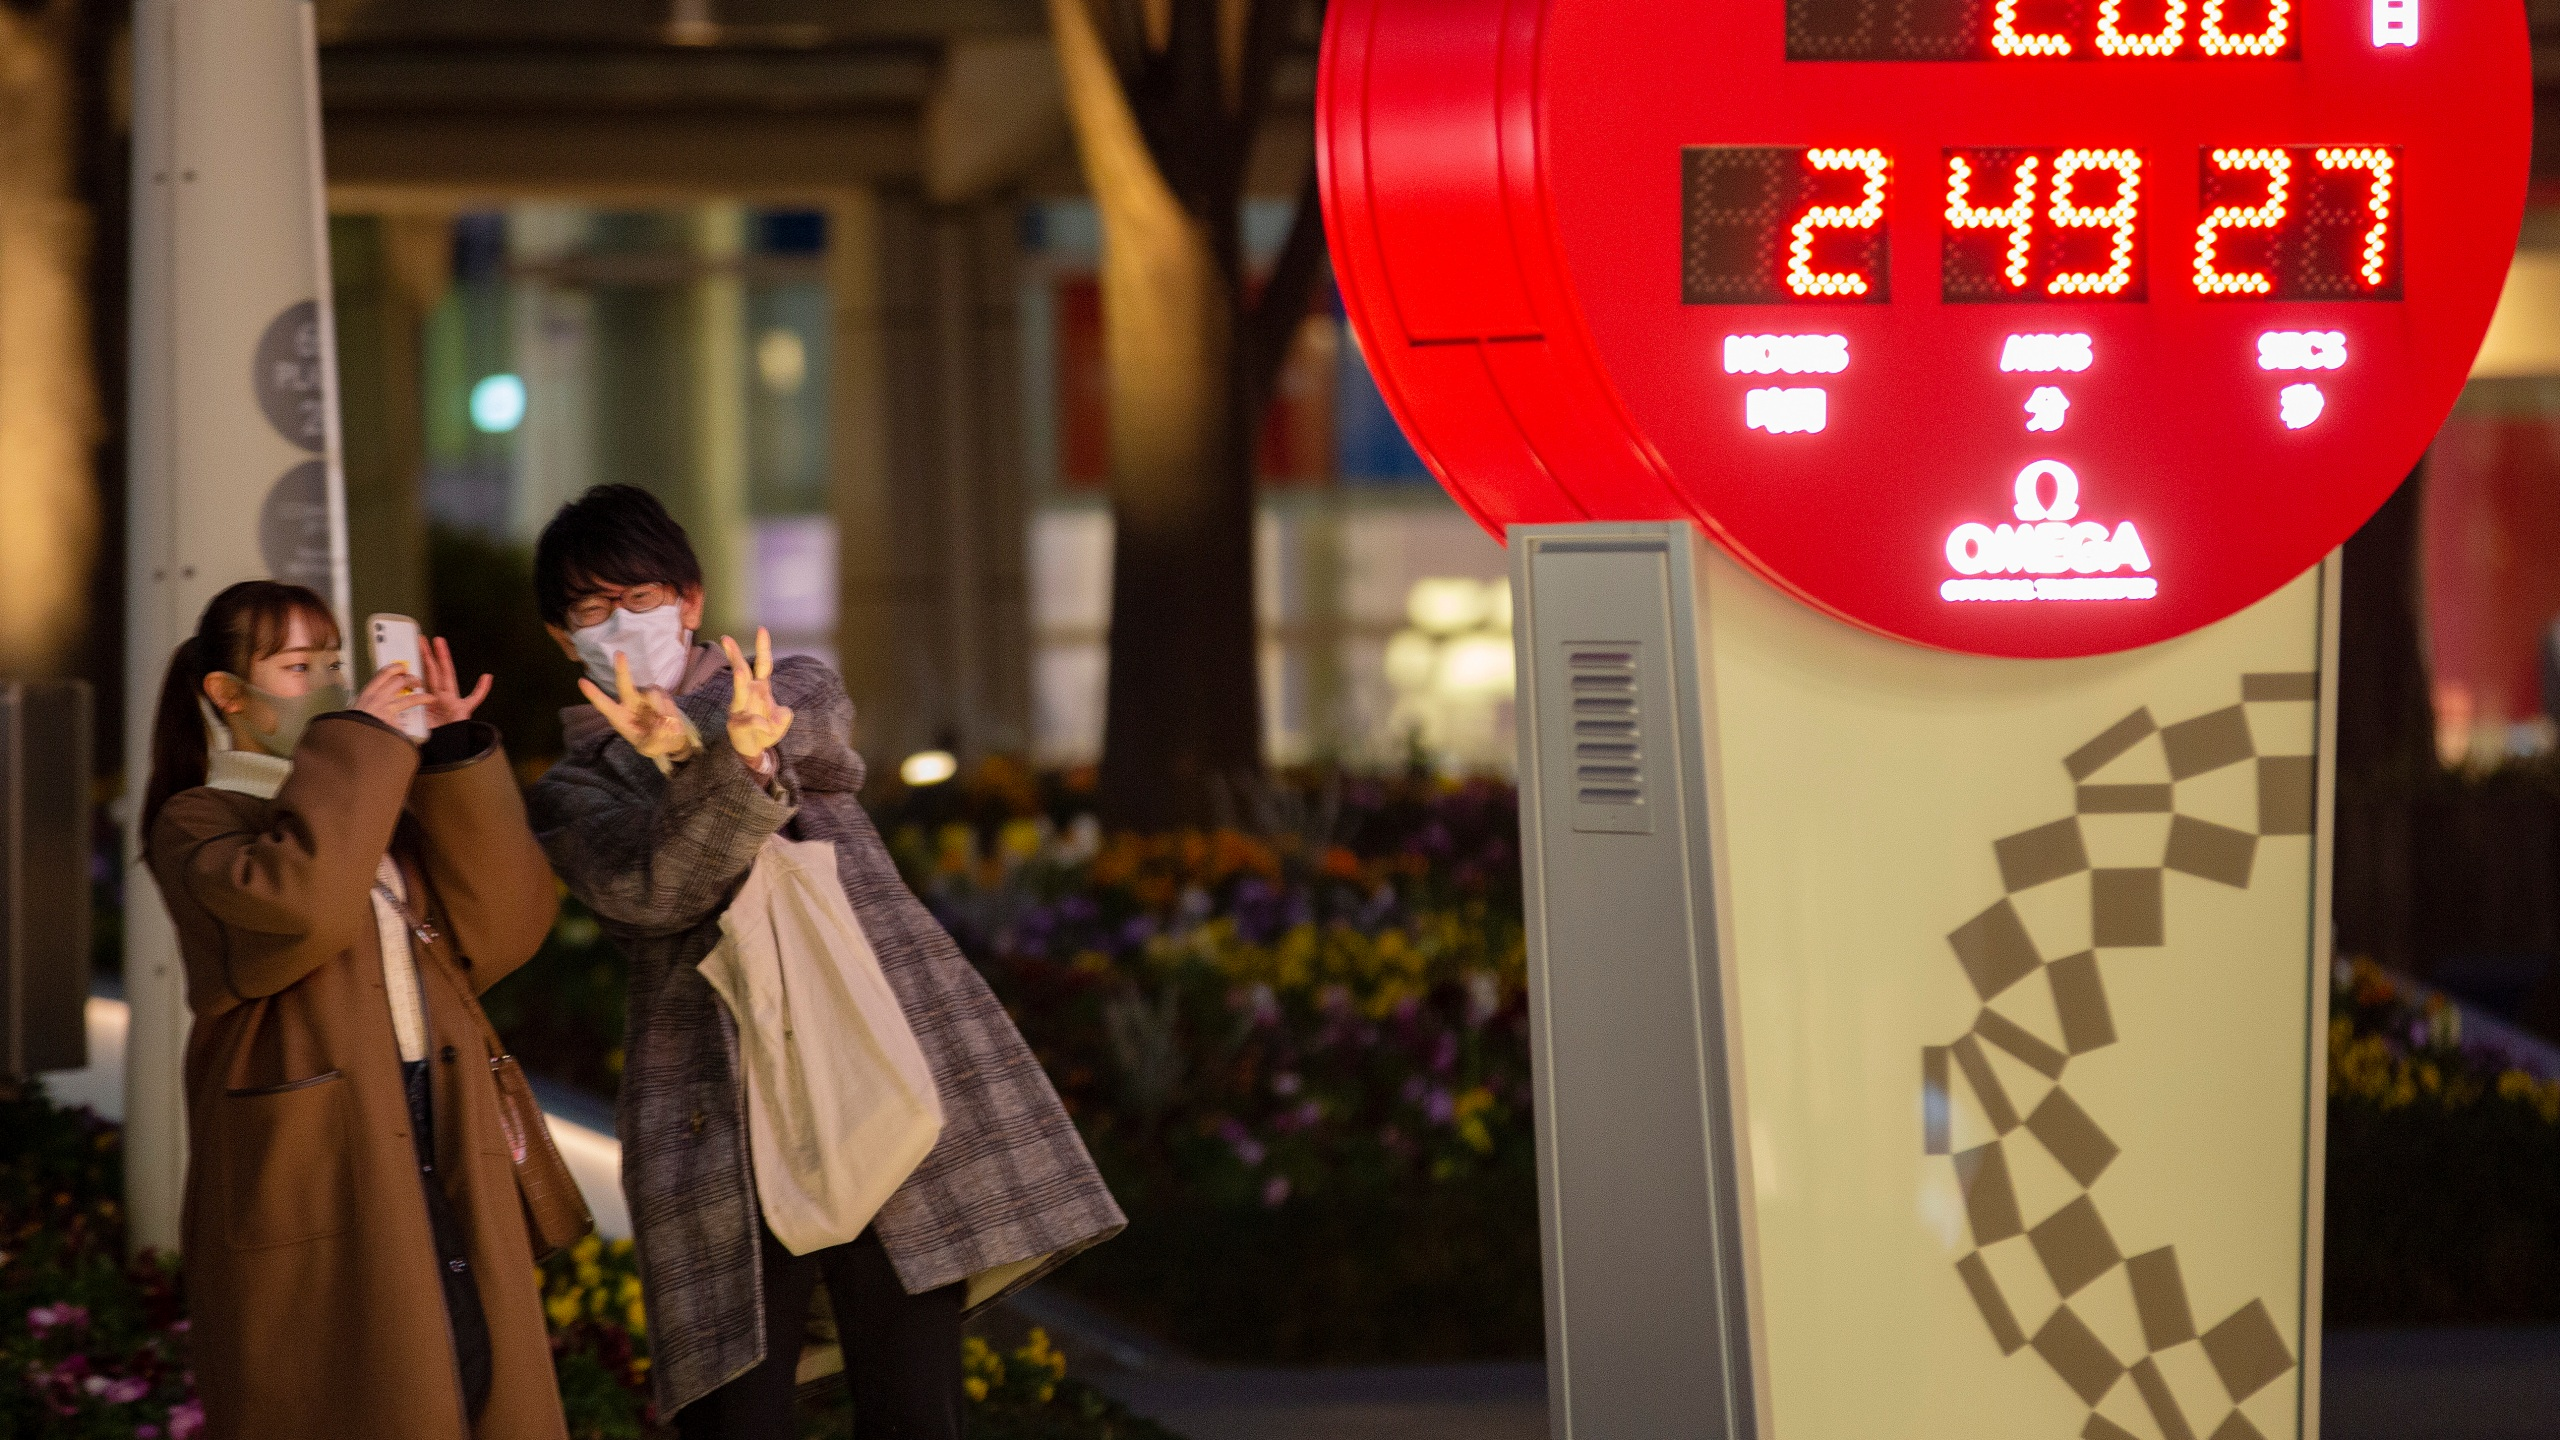 People wearing face masks walk by a countdown calendar showing 200 days to the opening ceremony of the Tokyo 2020 Olympics Monday, Jan. 4, 2021, in Tokyo. The countdown clock for the postponed Tokyo Olympics hit 200 days to go on Monday. Also on Monday, Japanese Prime Minister Yoshihide Suga said he would consider calling a state of emergency as new coronavirus cases surge to record numbers in Tokyo and neighboring prefectures. (AP Photo/Kiichiro Sato)